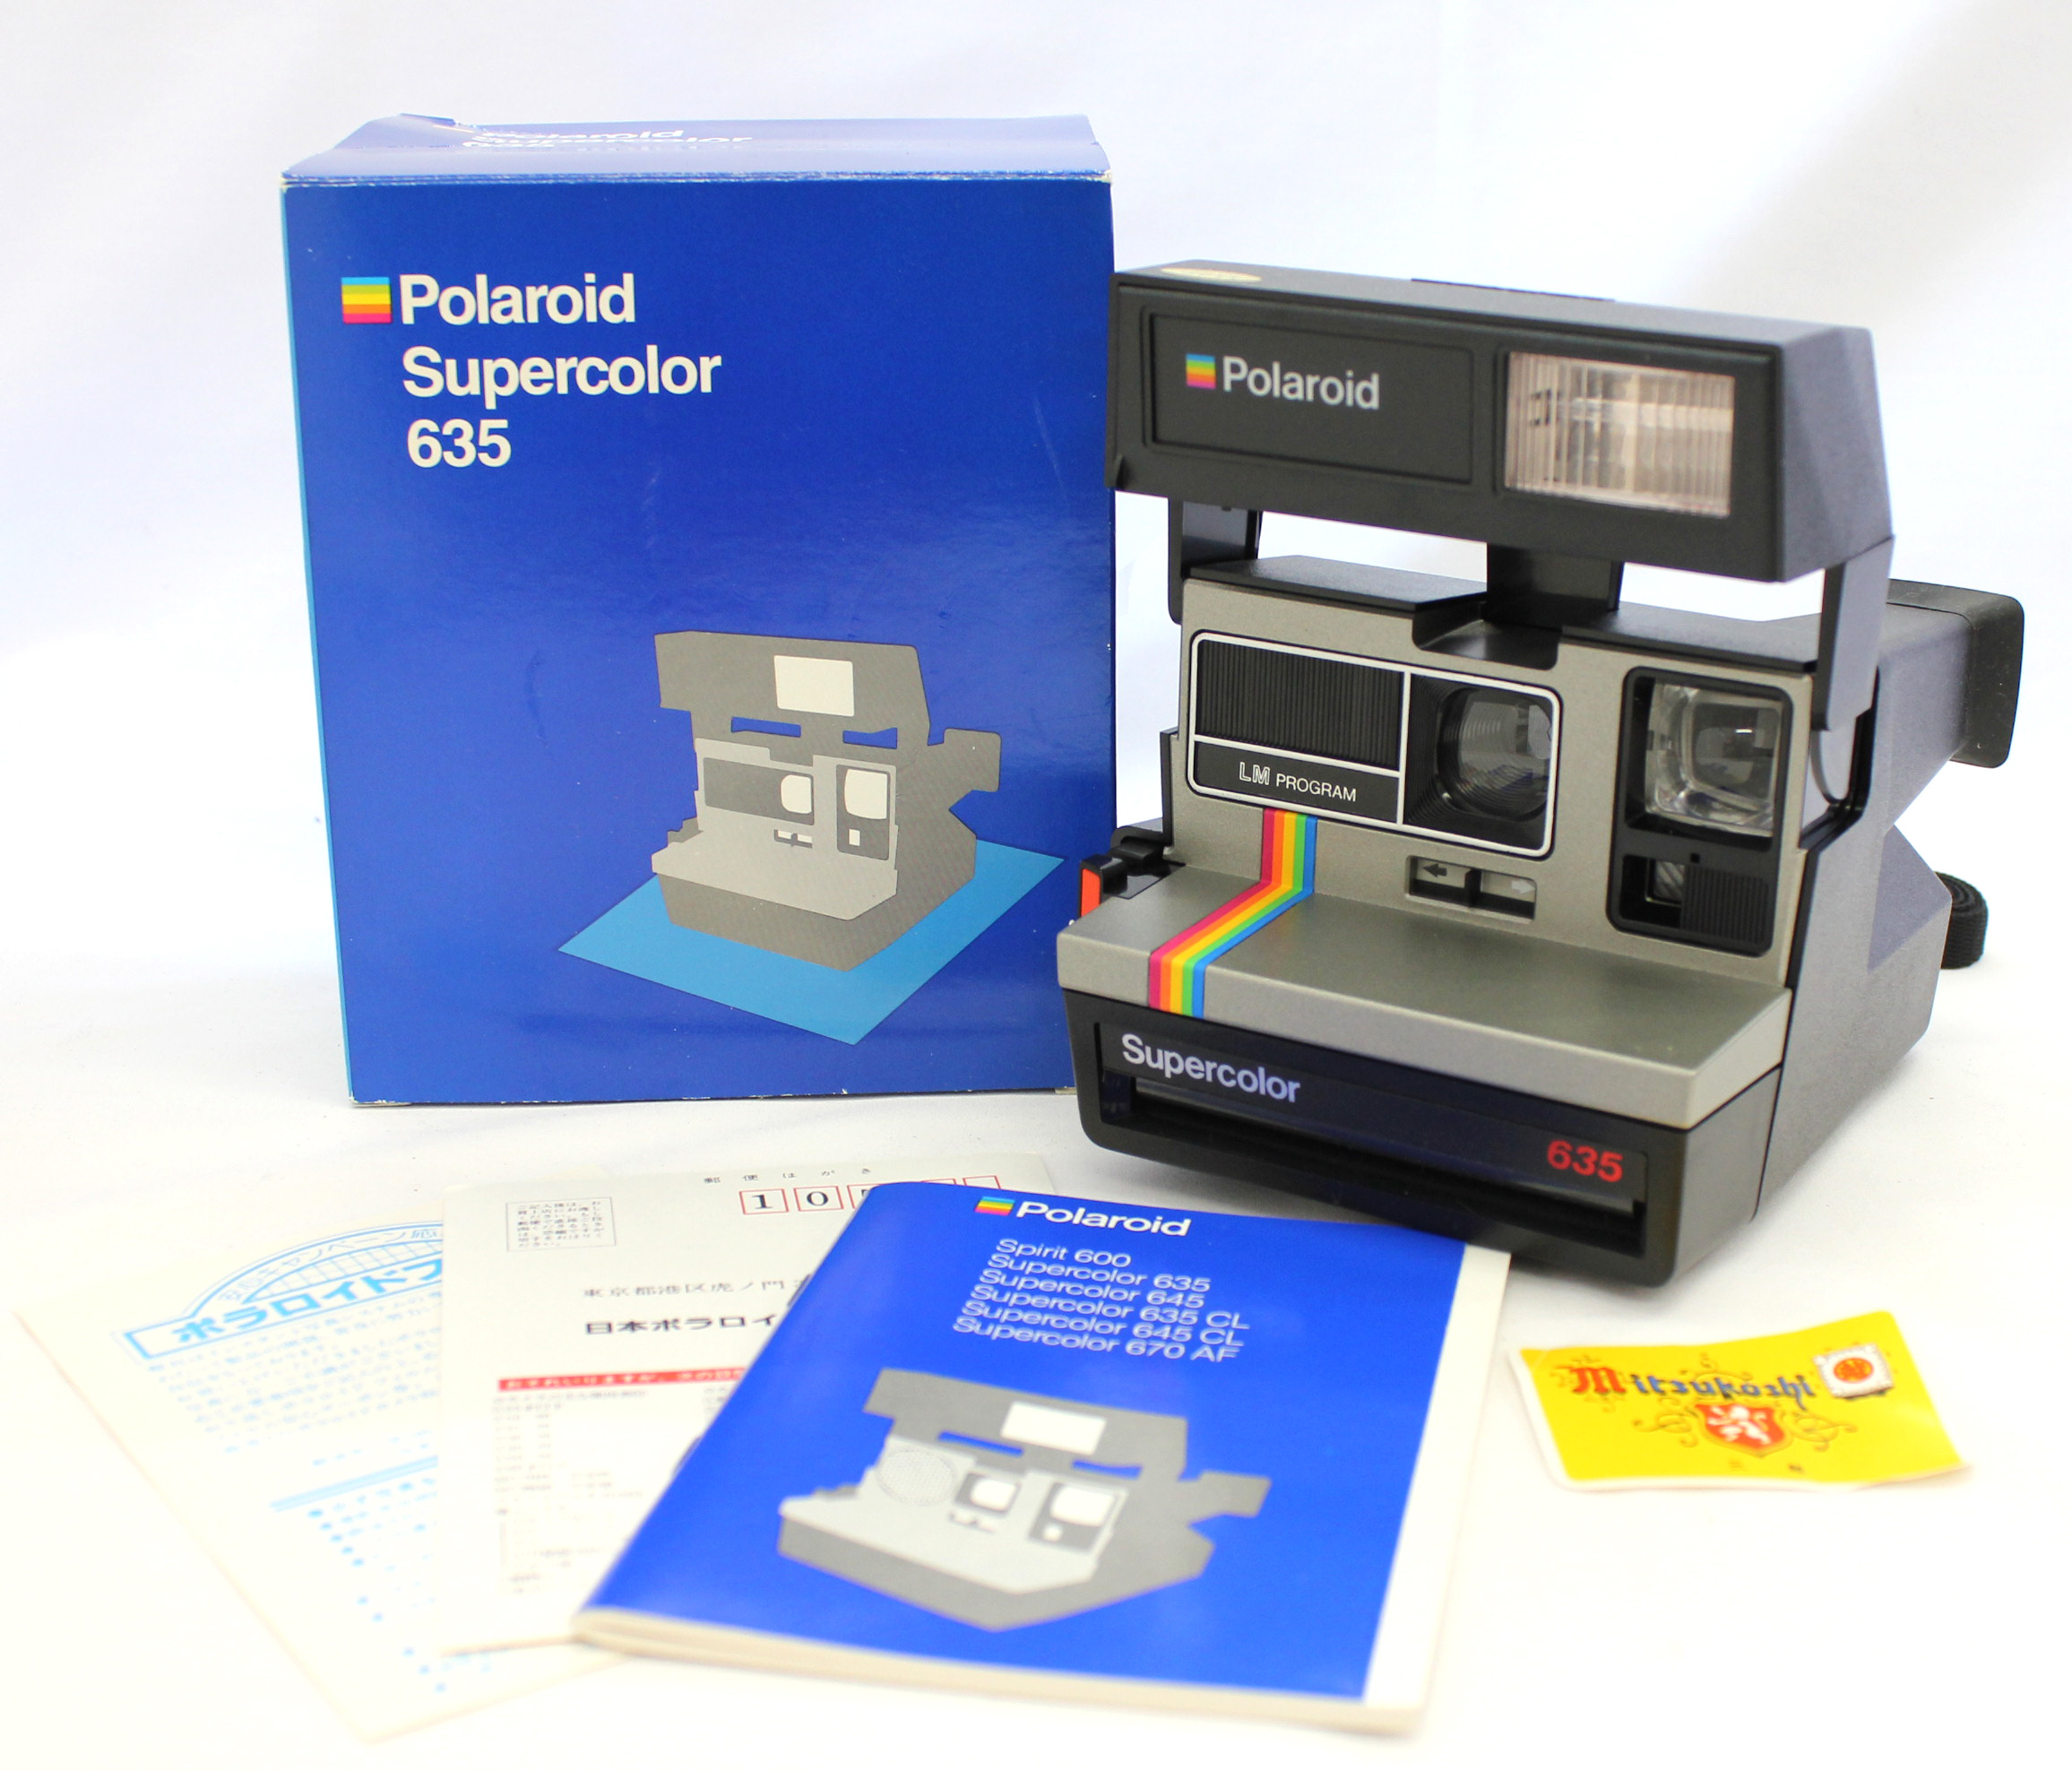 Japan Used Camera Shop | [Mint in Box] Polaroid Supercolor 635 LM Program (Tested) from Japan